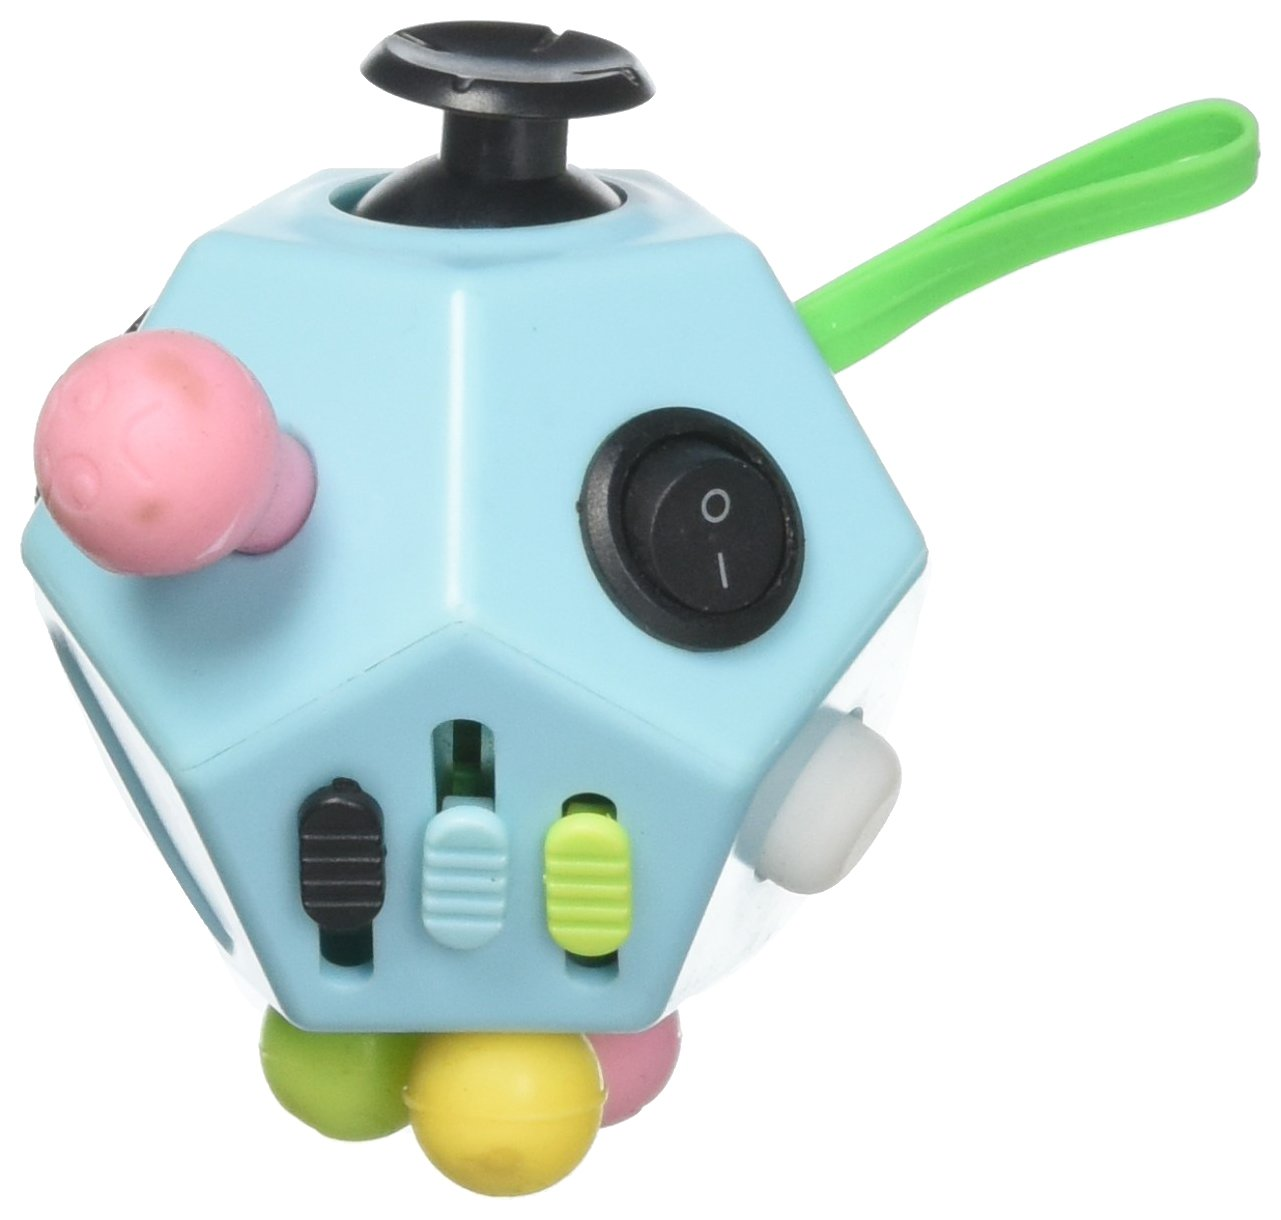 Fidget Dodecagon – 12 Sided Fidget Cube Relieves Stress and Anxiety – Toy Increases Focus and Attention for Children and Adults with ADHD, ADD OCD, and Autism (Copper) Twiddler Toys DGT437